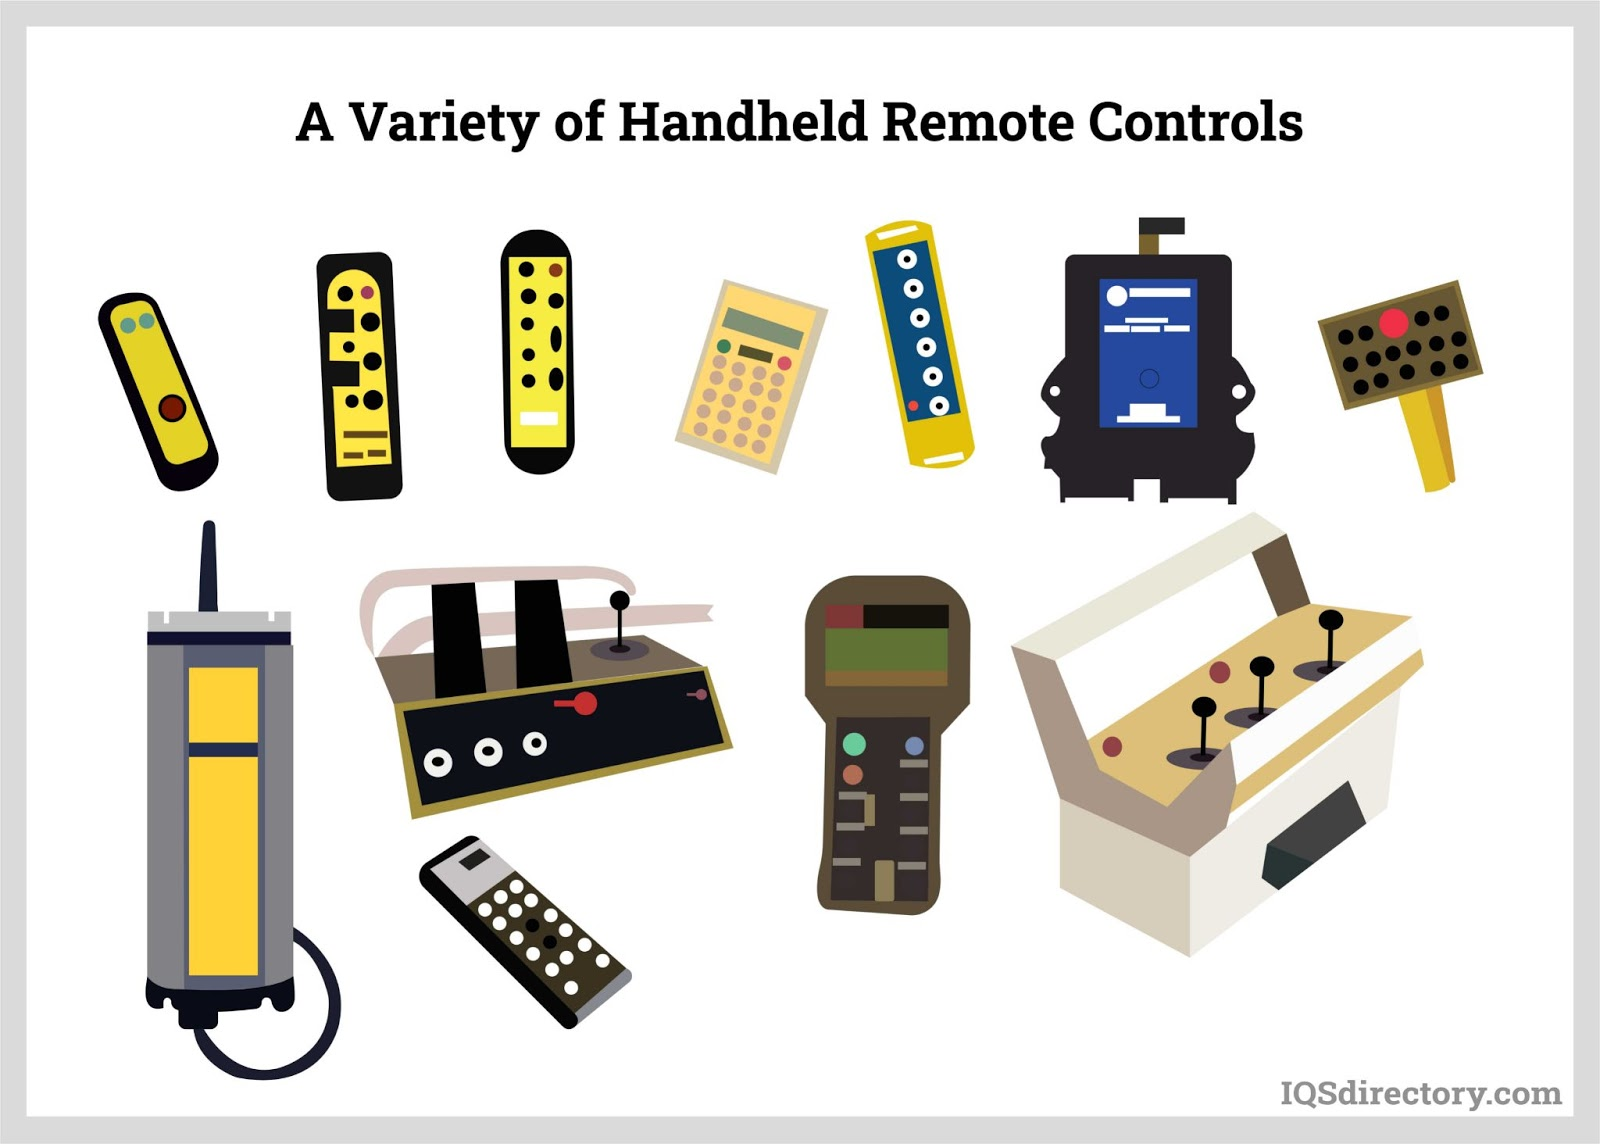 A Variety of Handheld Remote Controls